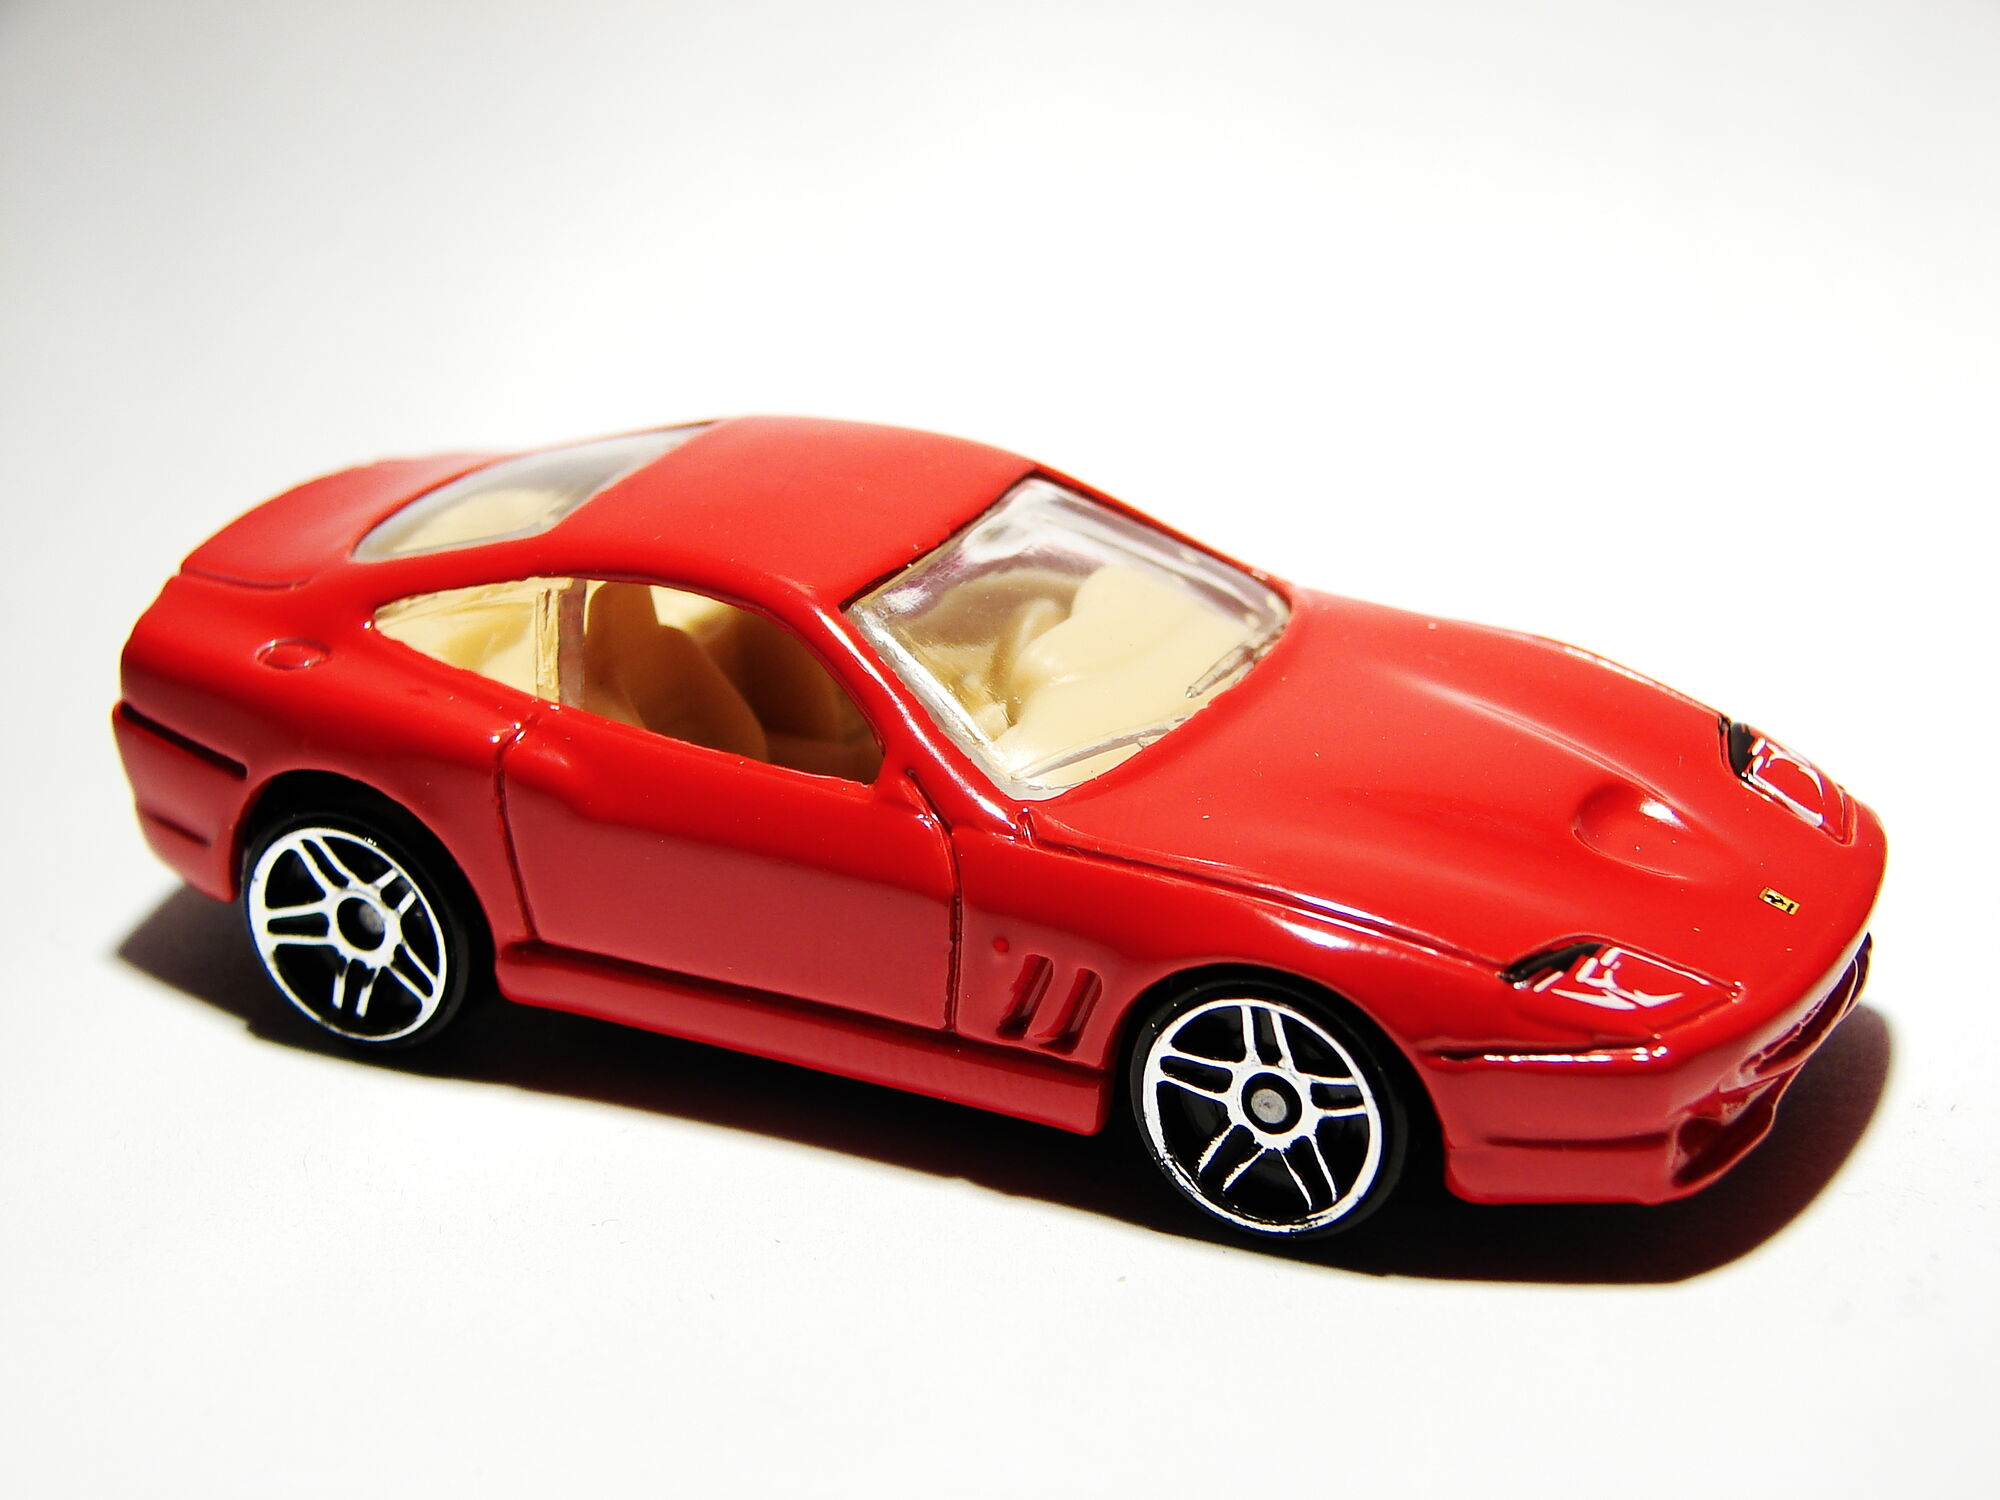 ferrari 550 maranello hot wheels wiki fandom powered. Black Bedroom Furniture Sets. Home Design Ideas